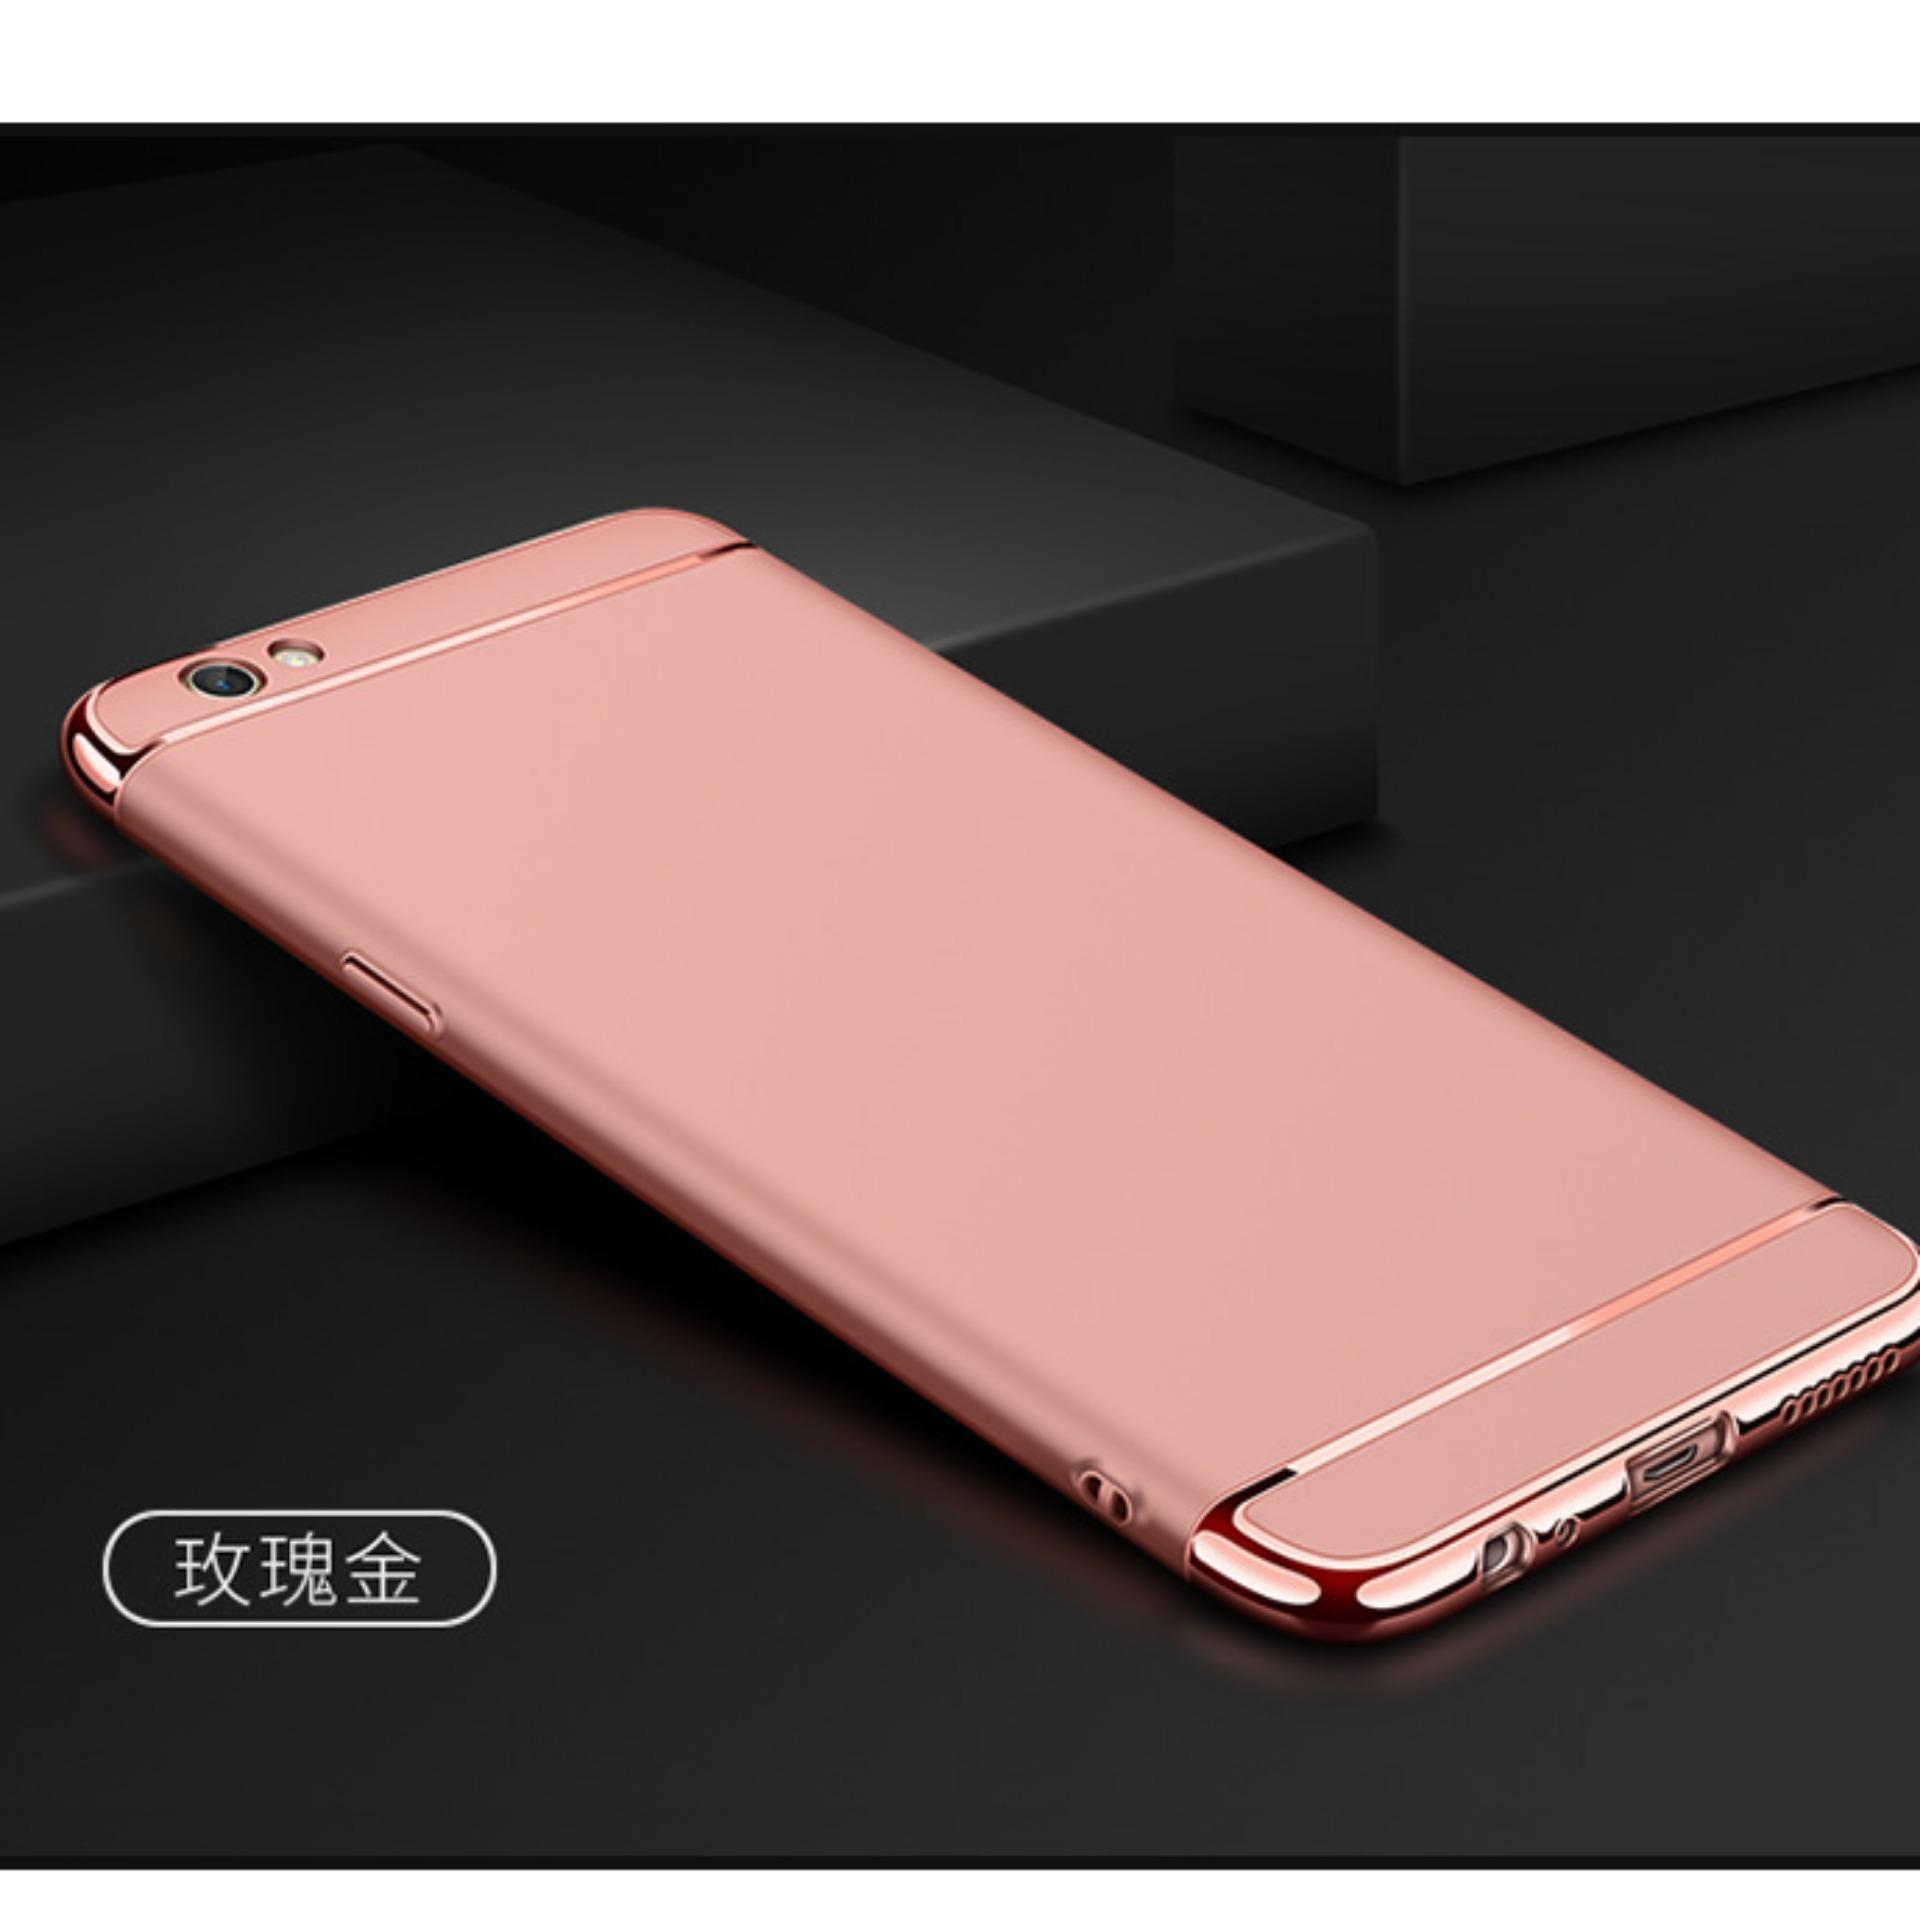 Flash Sale LongTeng 3 in 1 PC Protective Back Cover Case For OPPO F1s / OPPO A59 / OPPO A59s (Rose Gold) - intl